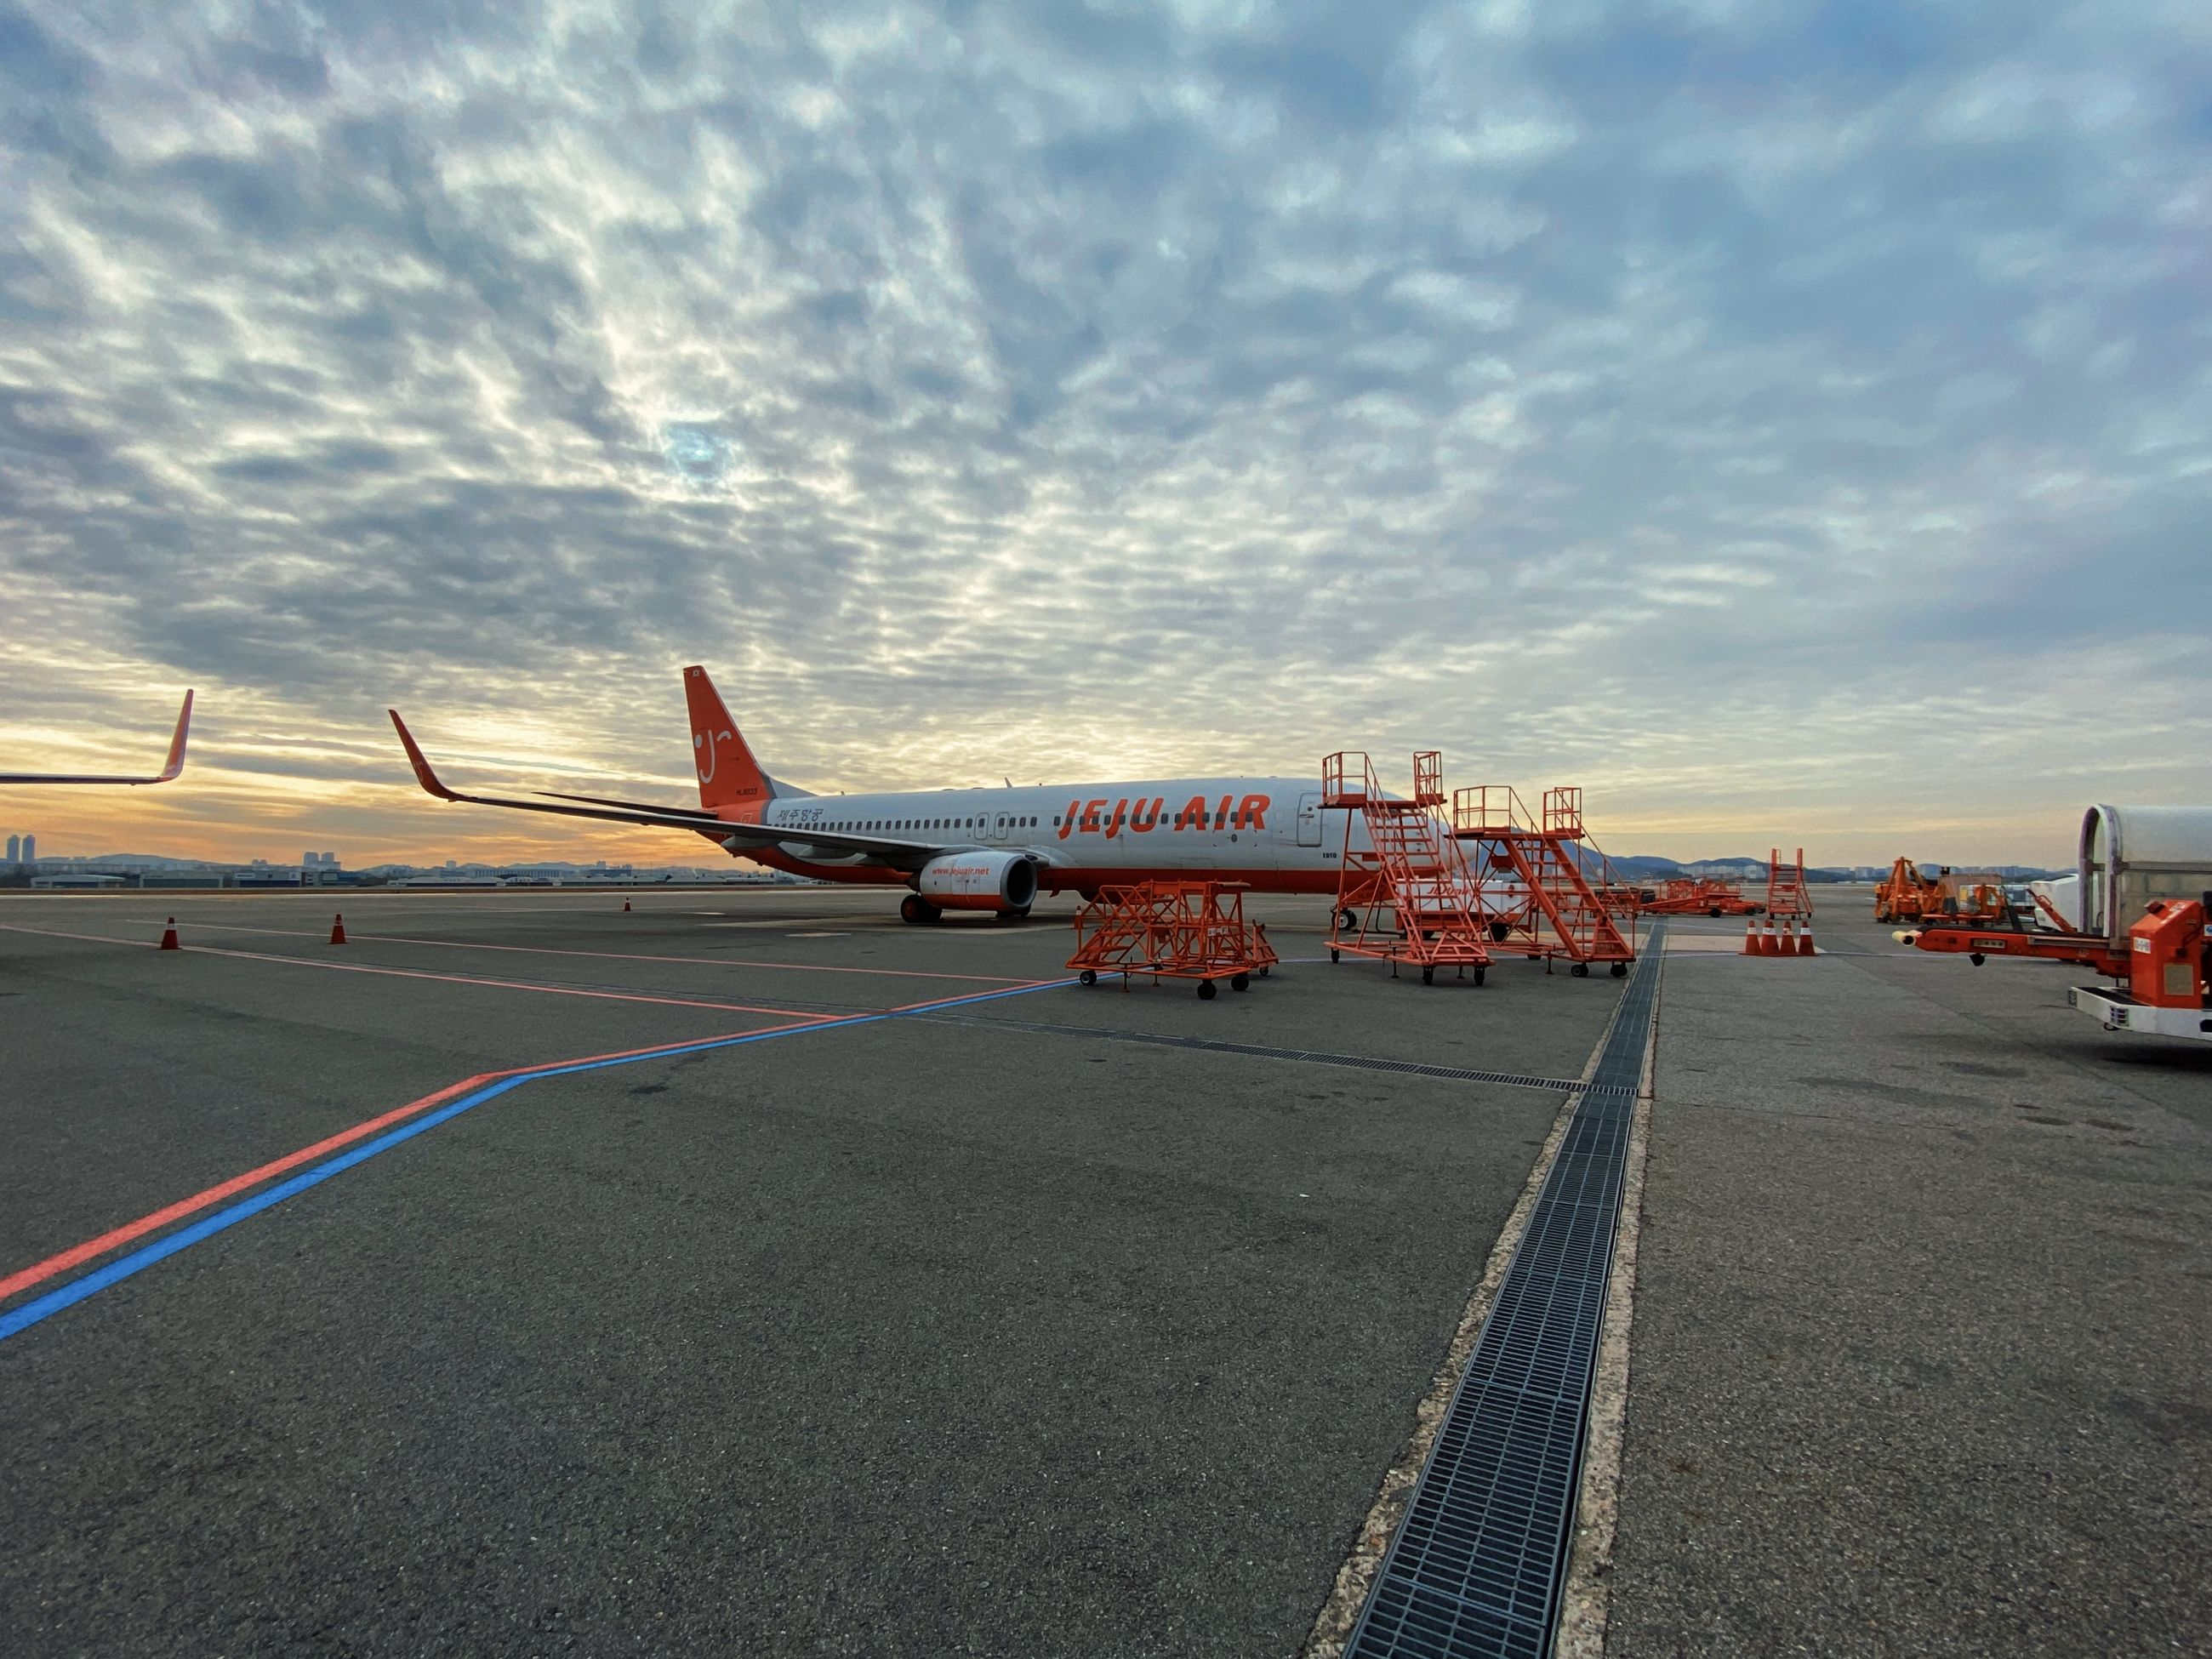 transportation, mode of transportation, sky, tarmac, airplane, airport, air vehicle, cloud, infrastructure, airport runway, travel, road, vehicle, nature, asphalt, aviation, no people, sunset, aircraft, outdoors, architecture, business, airliner